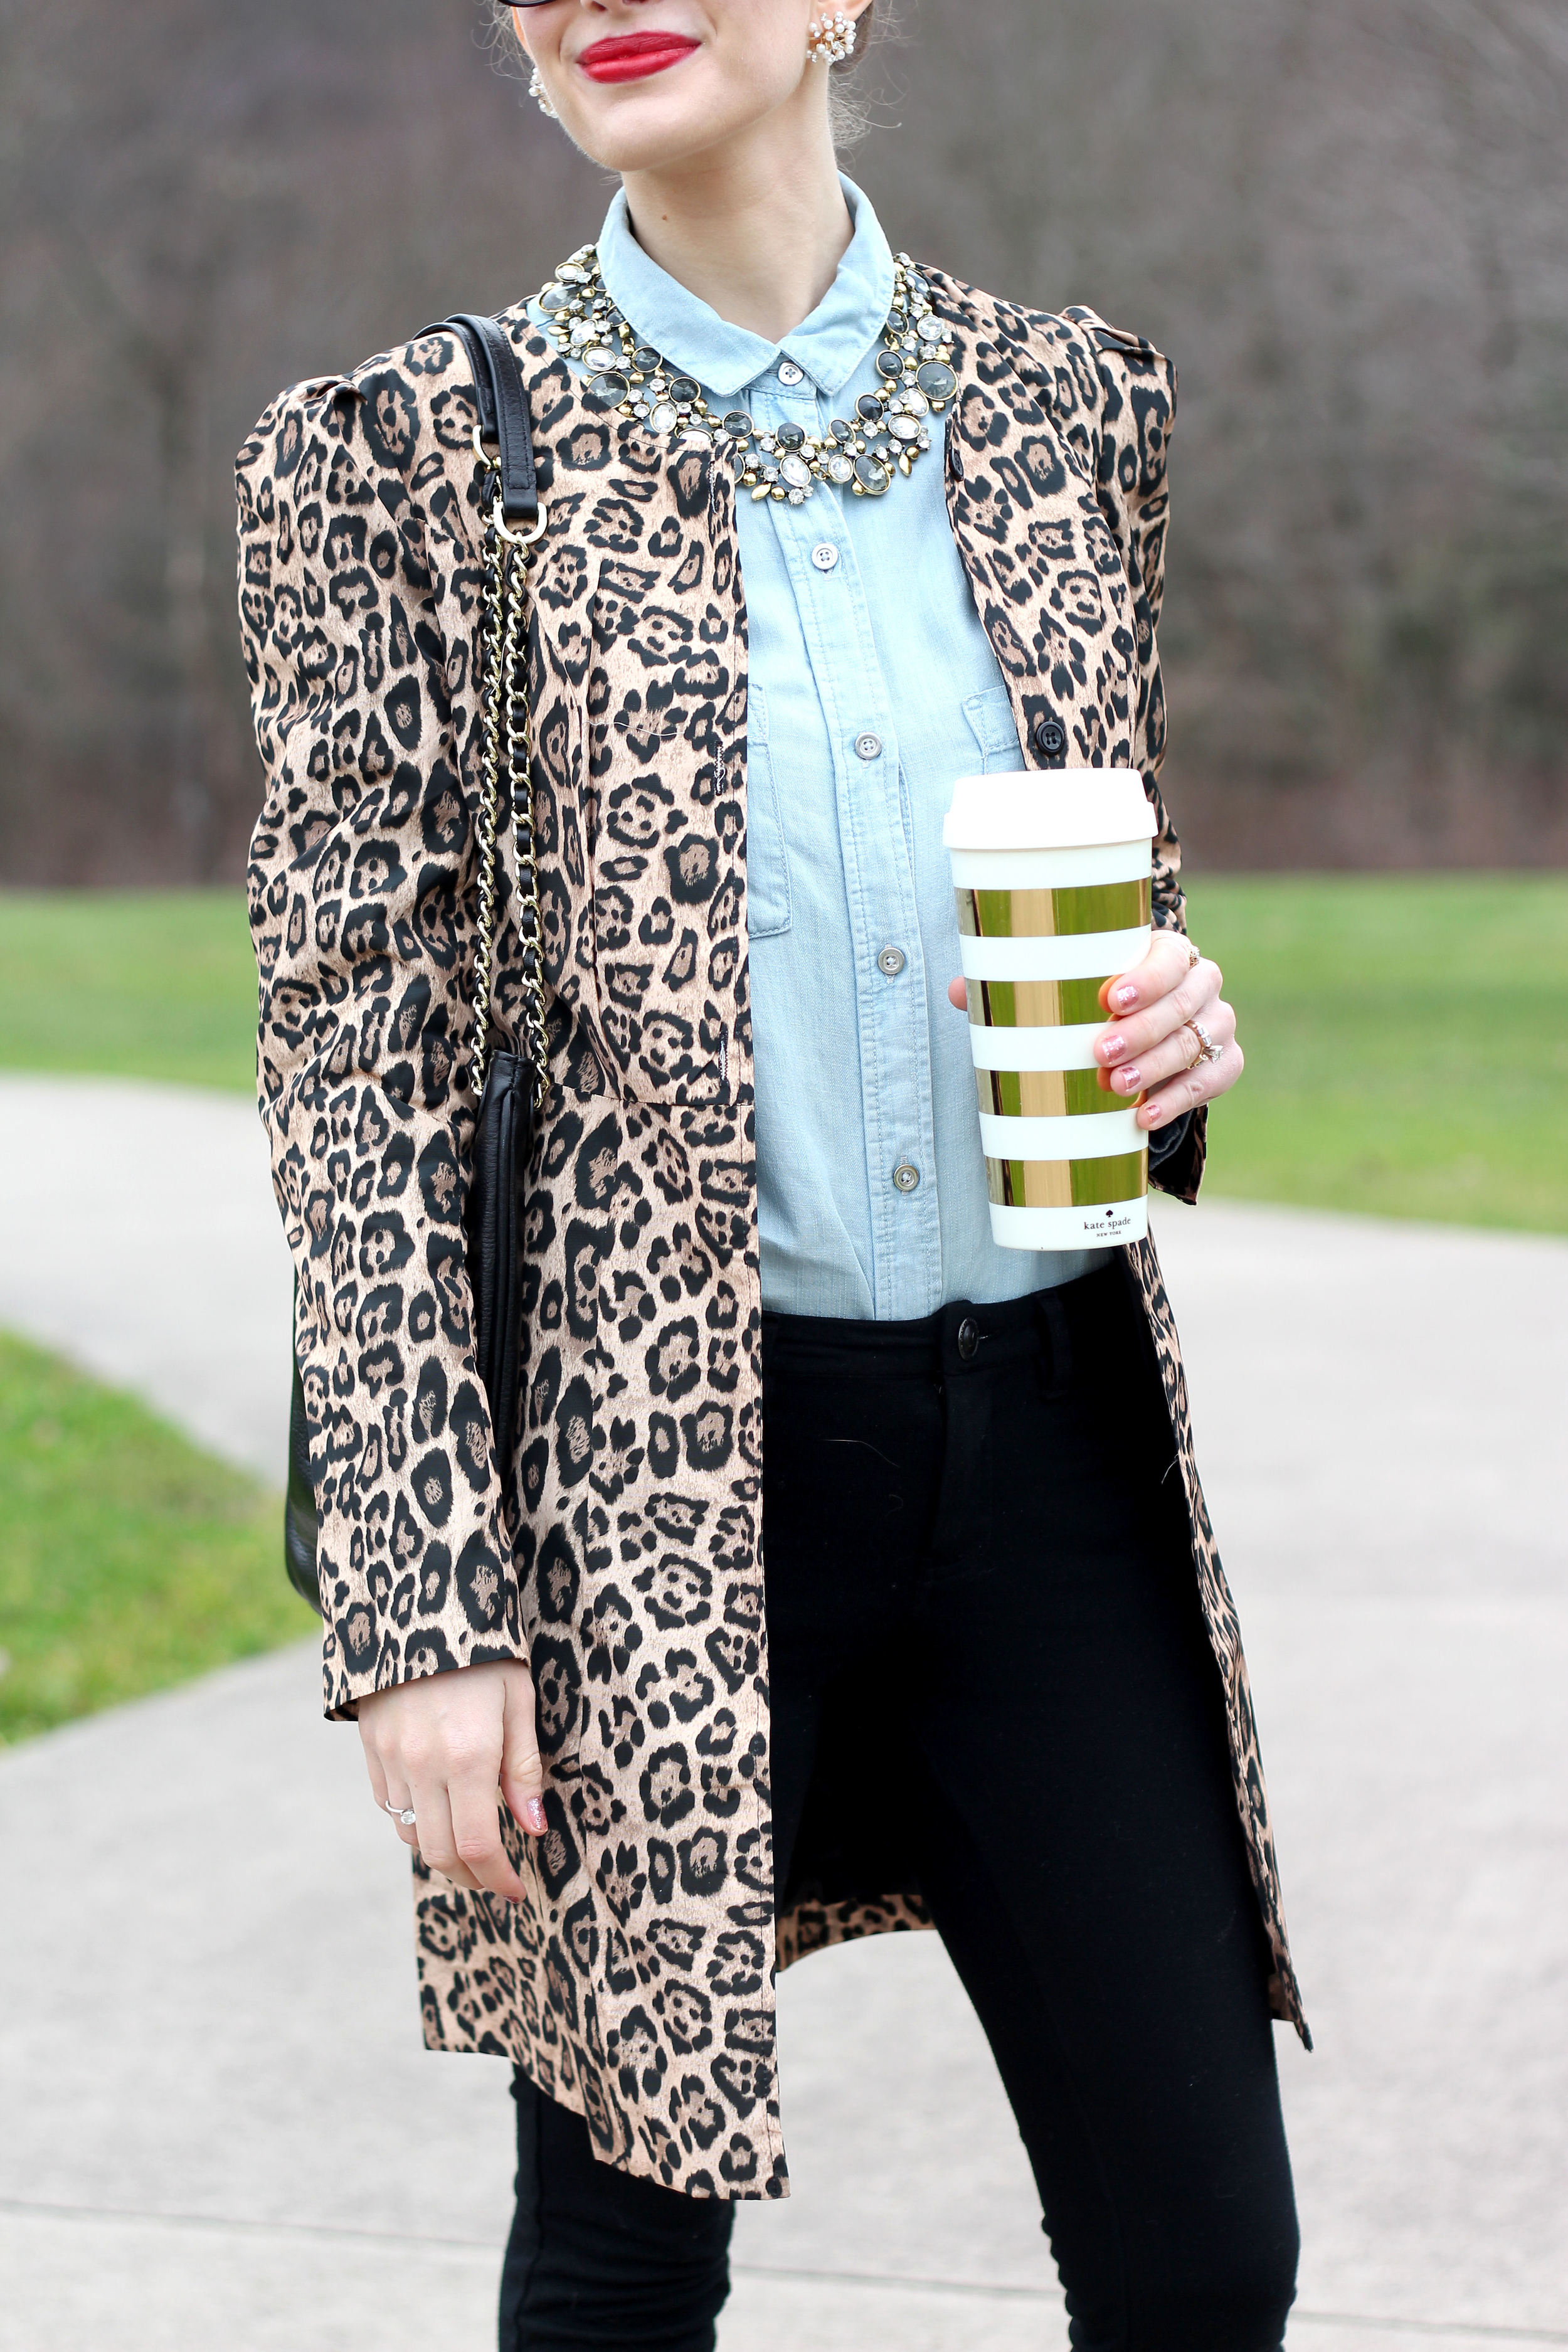 Leopard Coat & Statement Necklace- Enchanting Elegance